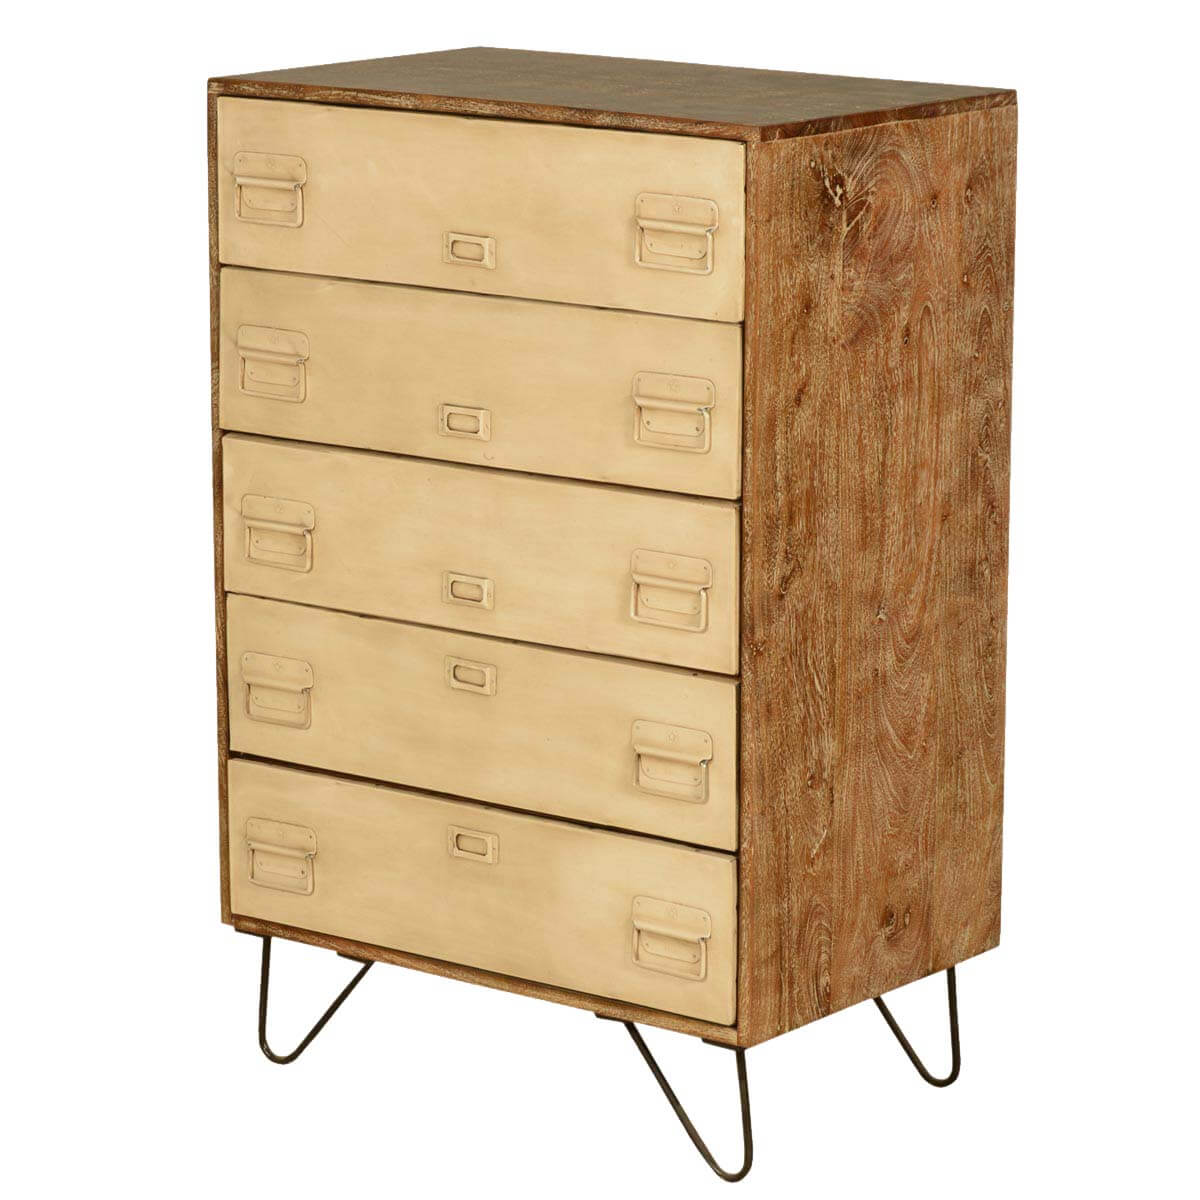 medium wyndenhall today shipping dresser product overstock garden brown home bedroom and free stratford cabinet auburn media